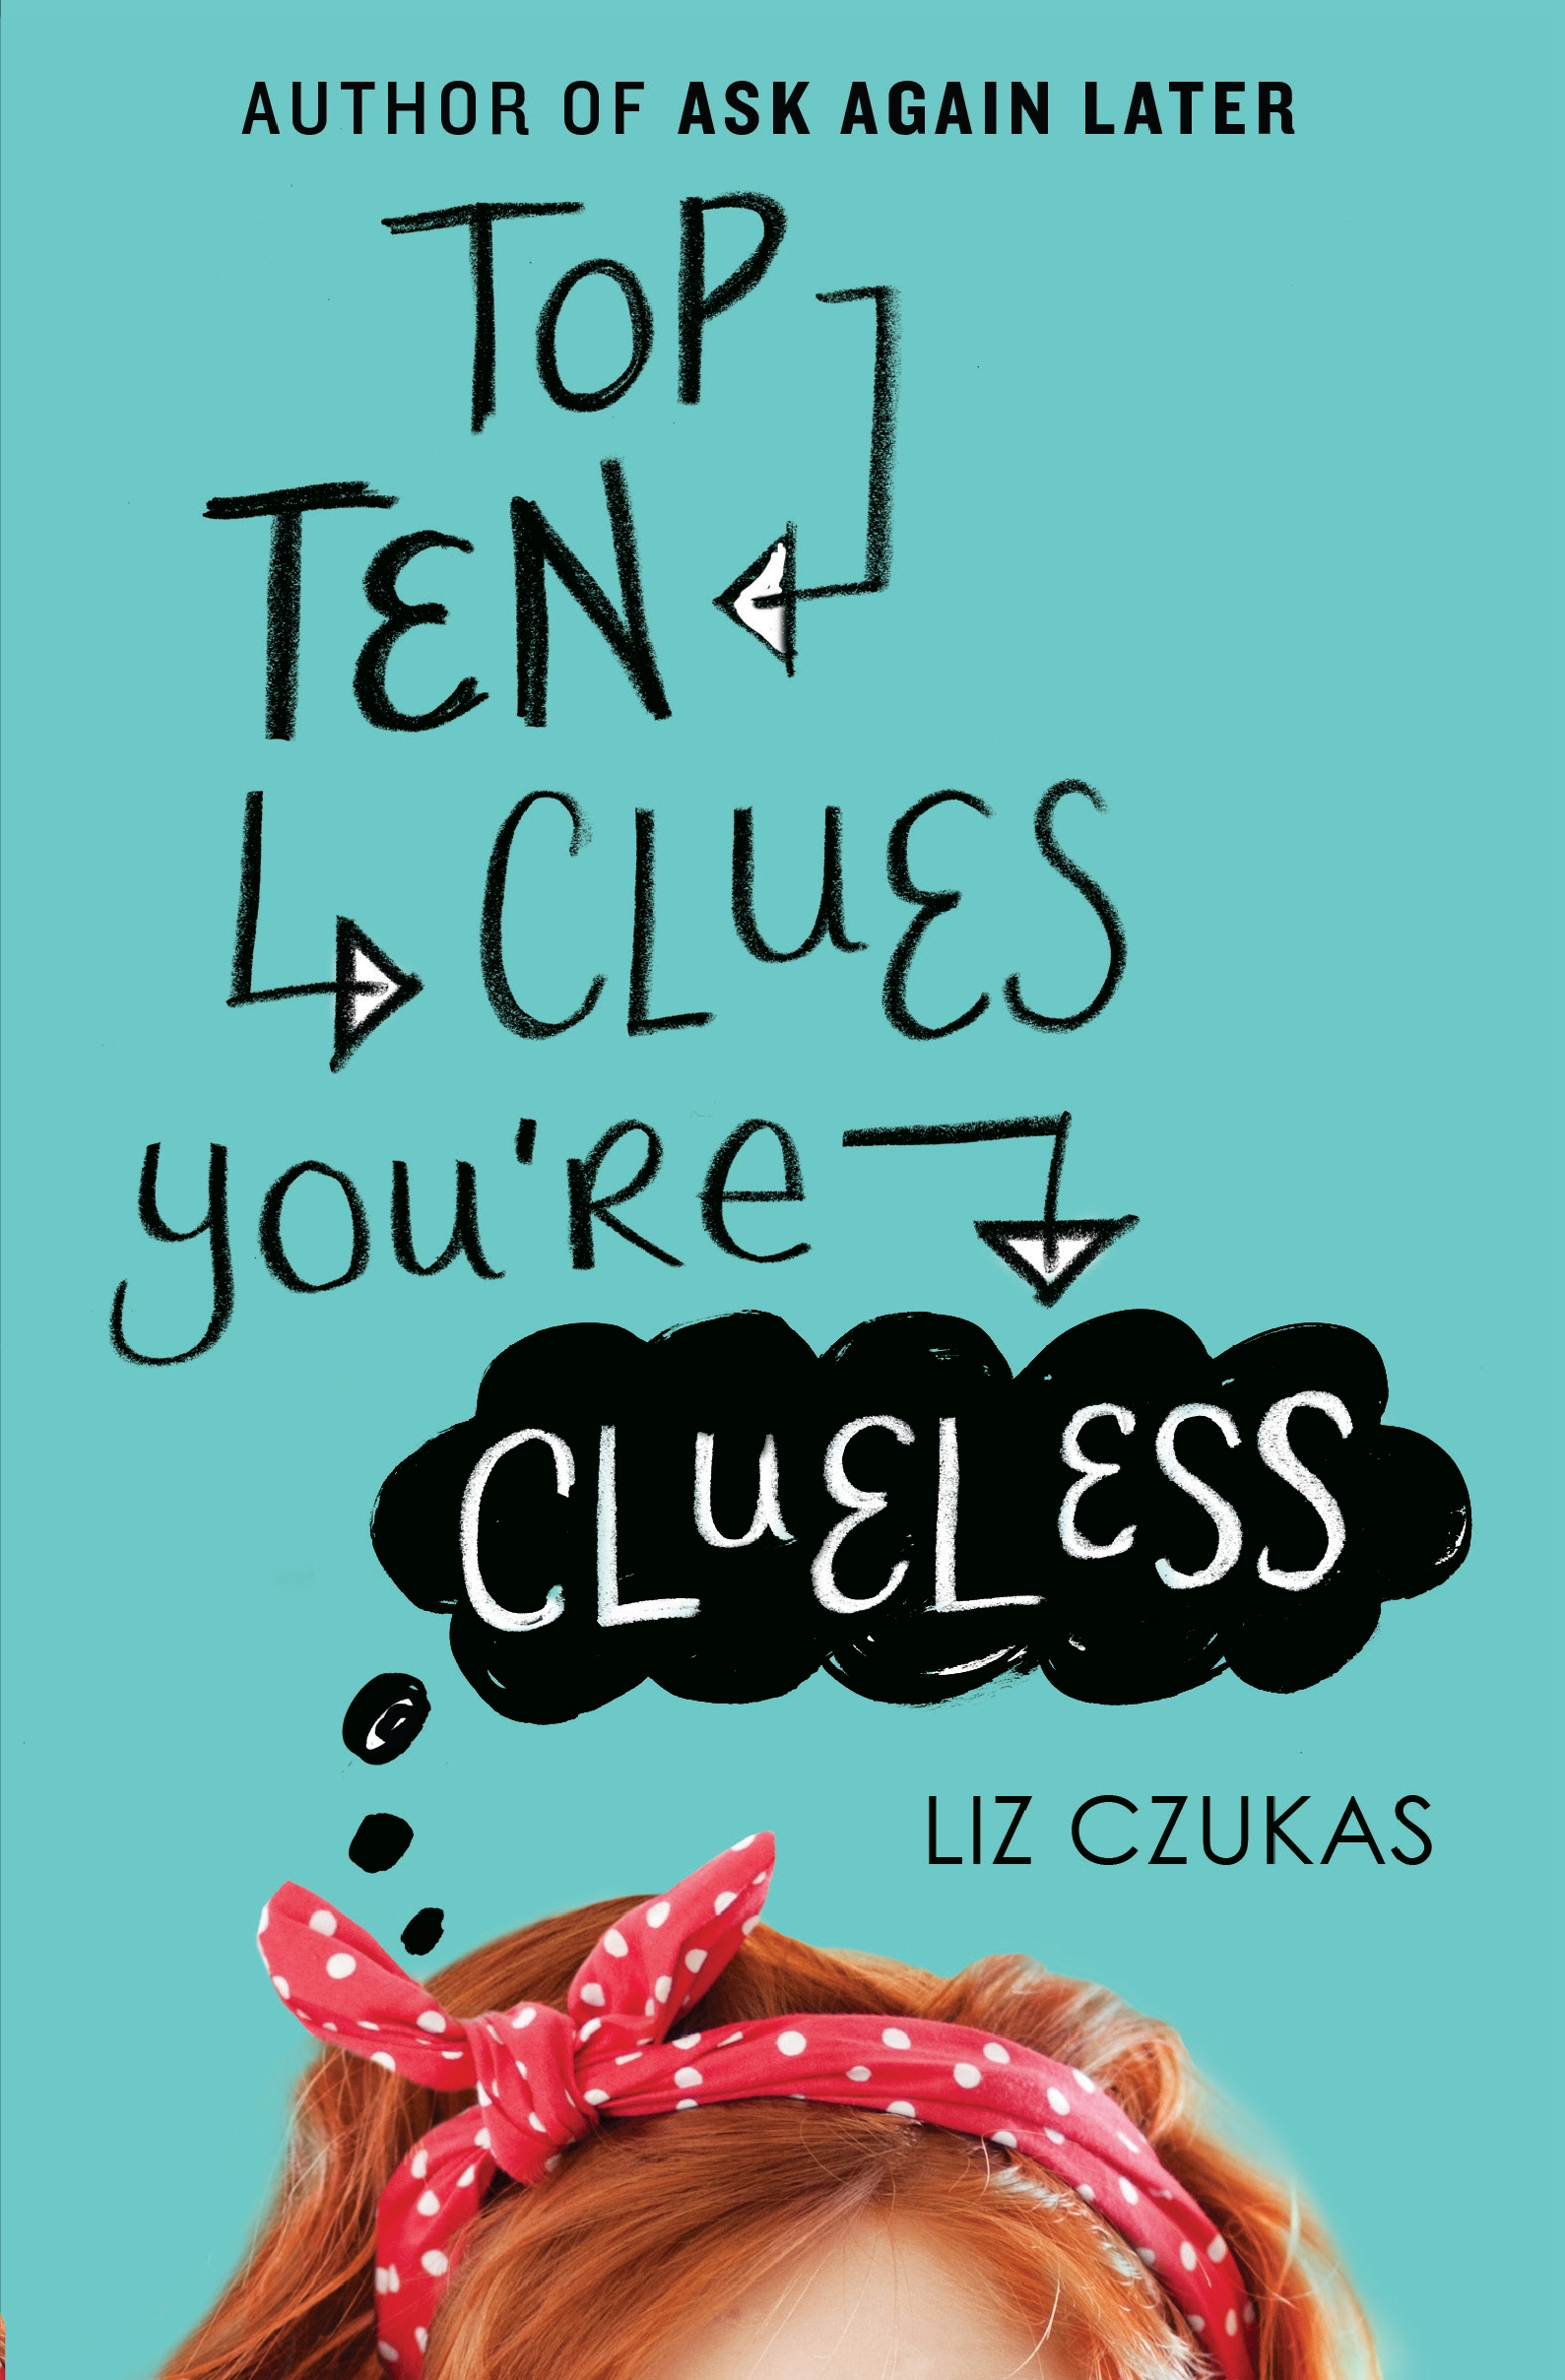 Top Ten Clues Youre Clueless Liz Czukas